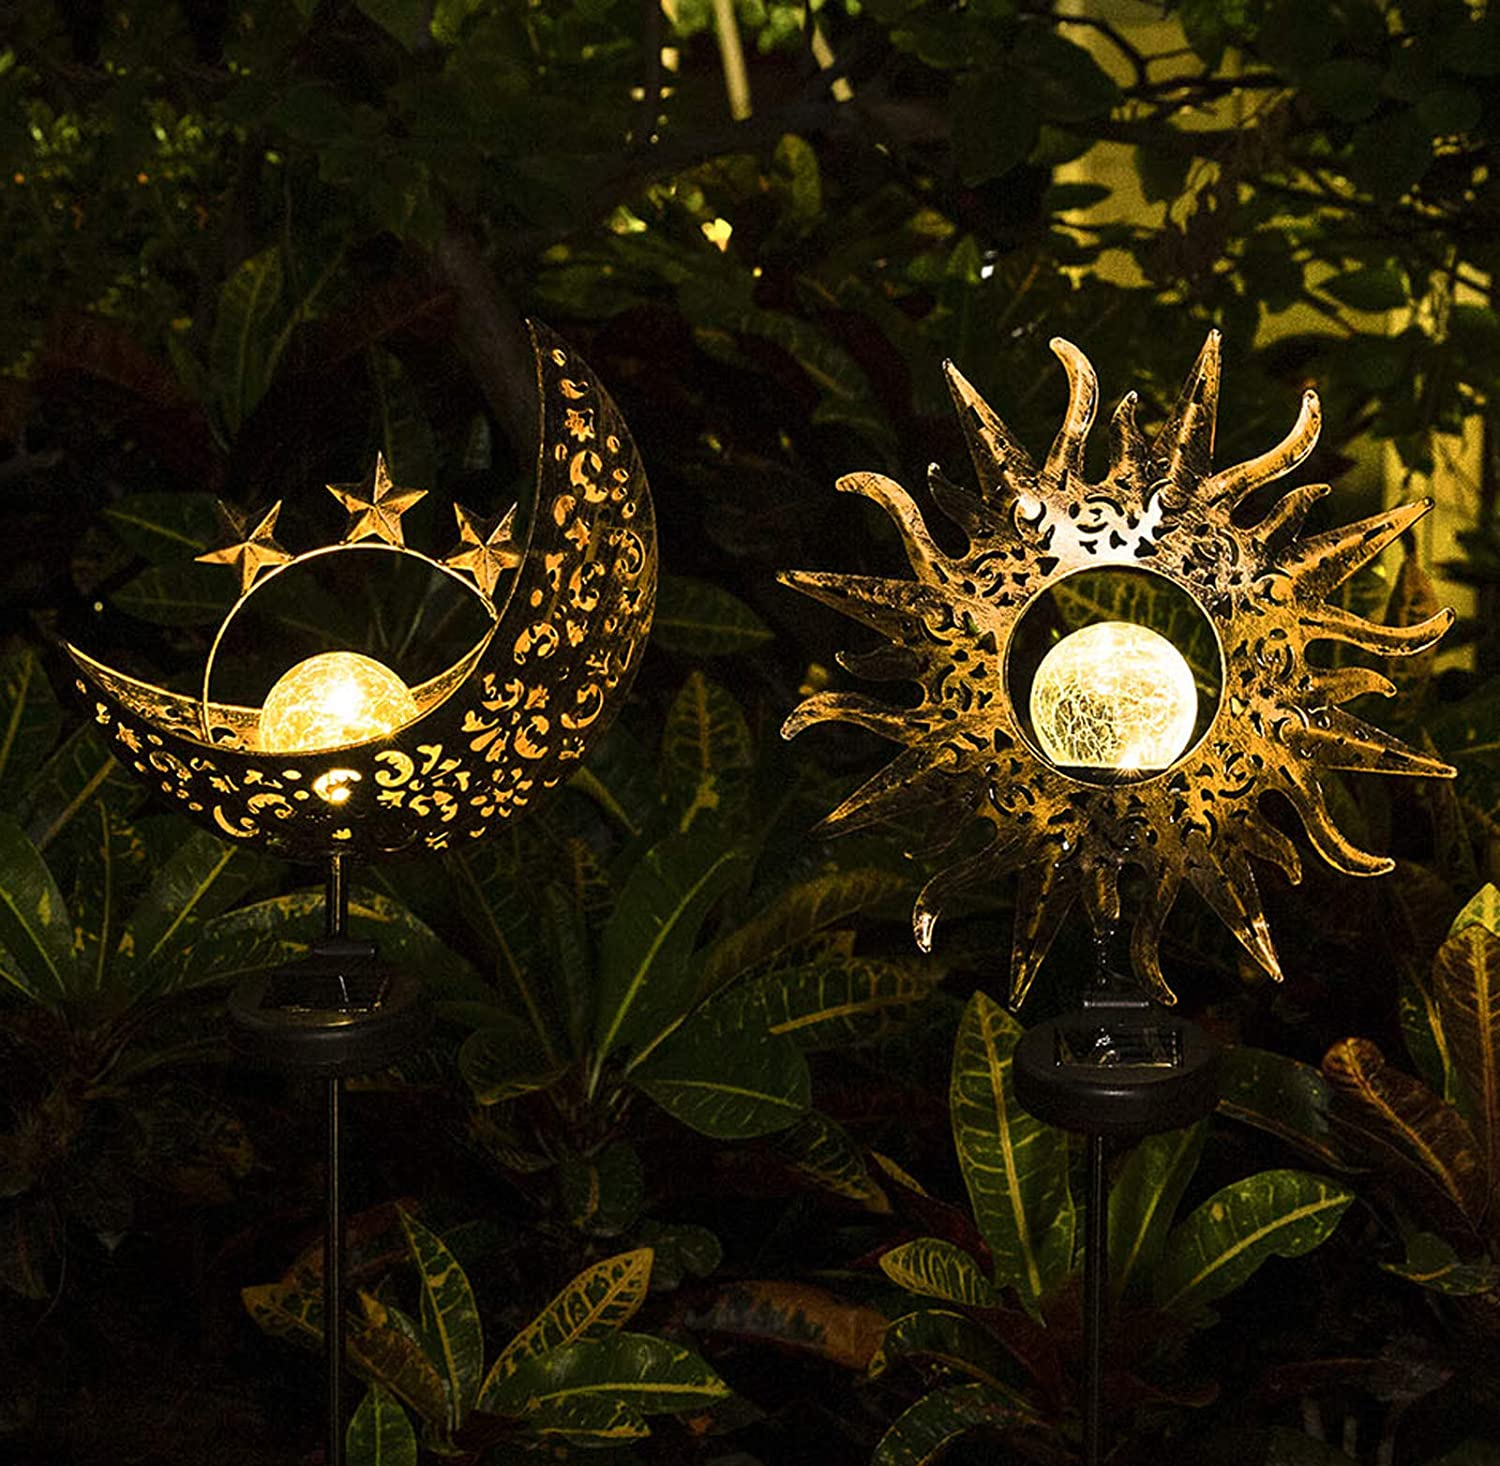 Solar Lights Outdoor Decorative - 2 Pack Garden Decor Waterproof Metal Sun Moon Stakes Lights Garden Art Crackle Glass Globe Lights for Patio,Yard,Lawn, Pathway (Sun Moon)